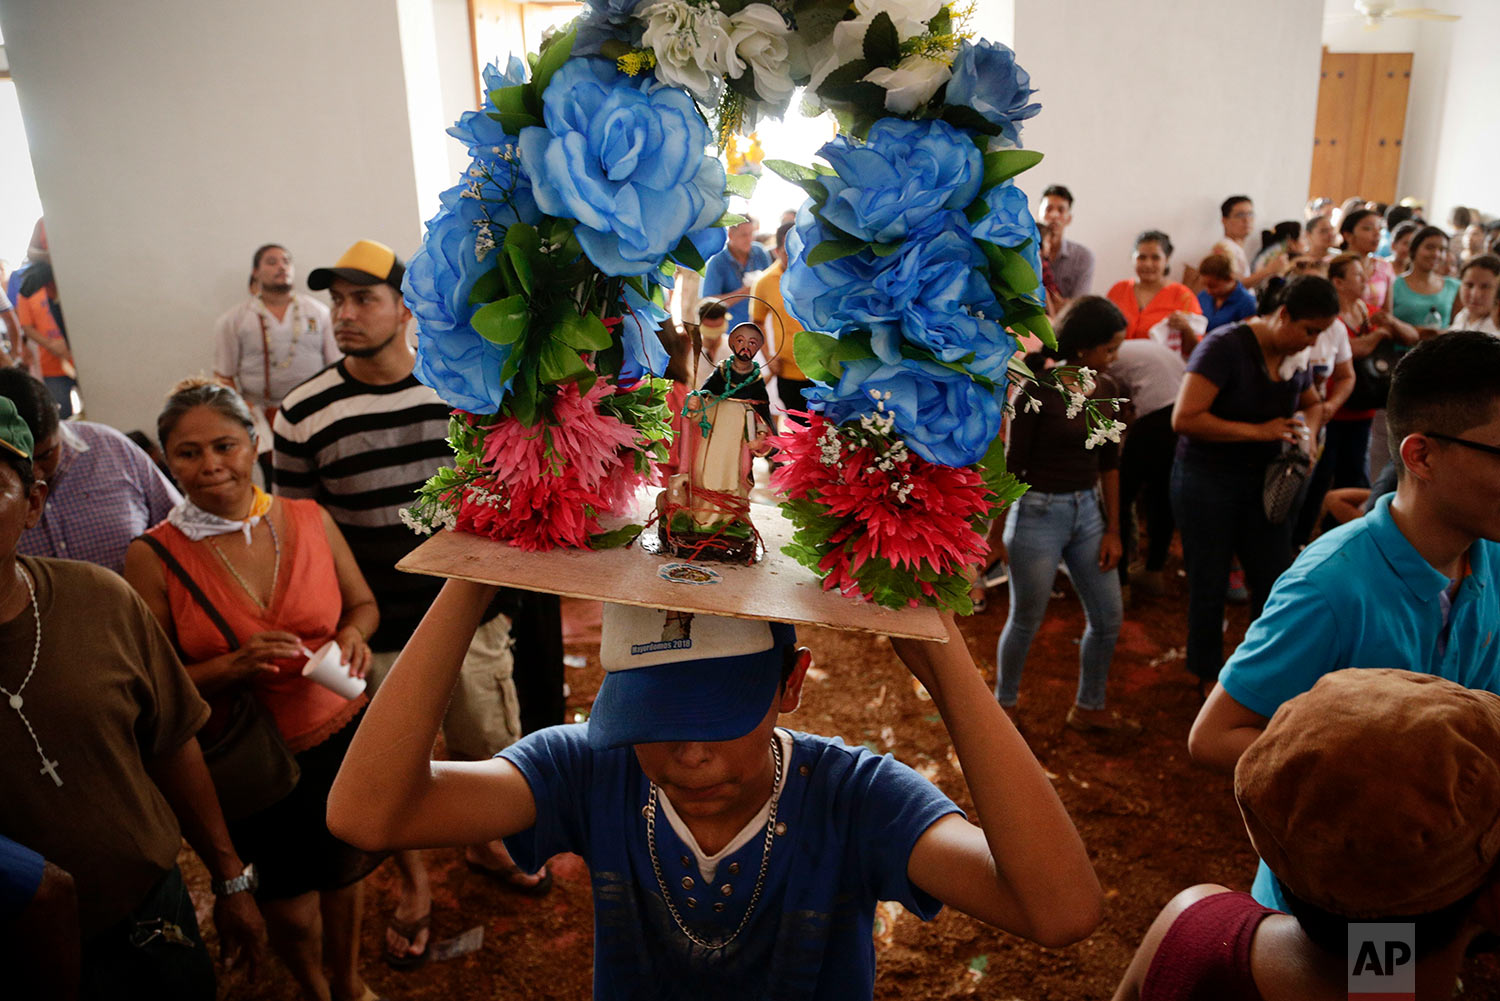 A youth holds up a statue of Santo Domingo de Guzman inside Las Sierritas church during Mass in honor of the saint in Managua, Nicaragua, July 31, 2018. The festival has its roots in the 1885 discovery of the 8-centimeter (a little over 3-inch) statue of Santo Domingo de Guzman, also known as St. Dominic de Guzman, the founder of the Dominican religious order. (AP Photo/Arnulfo Franco)